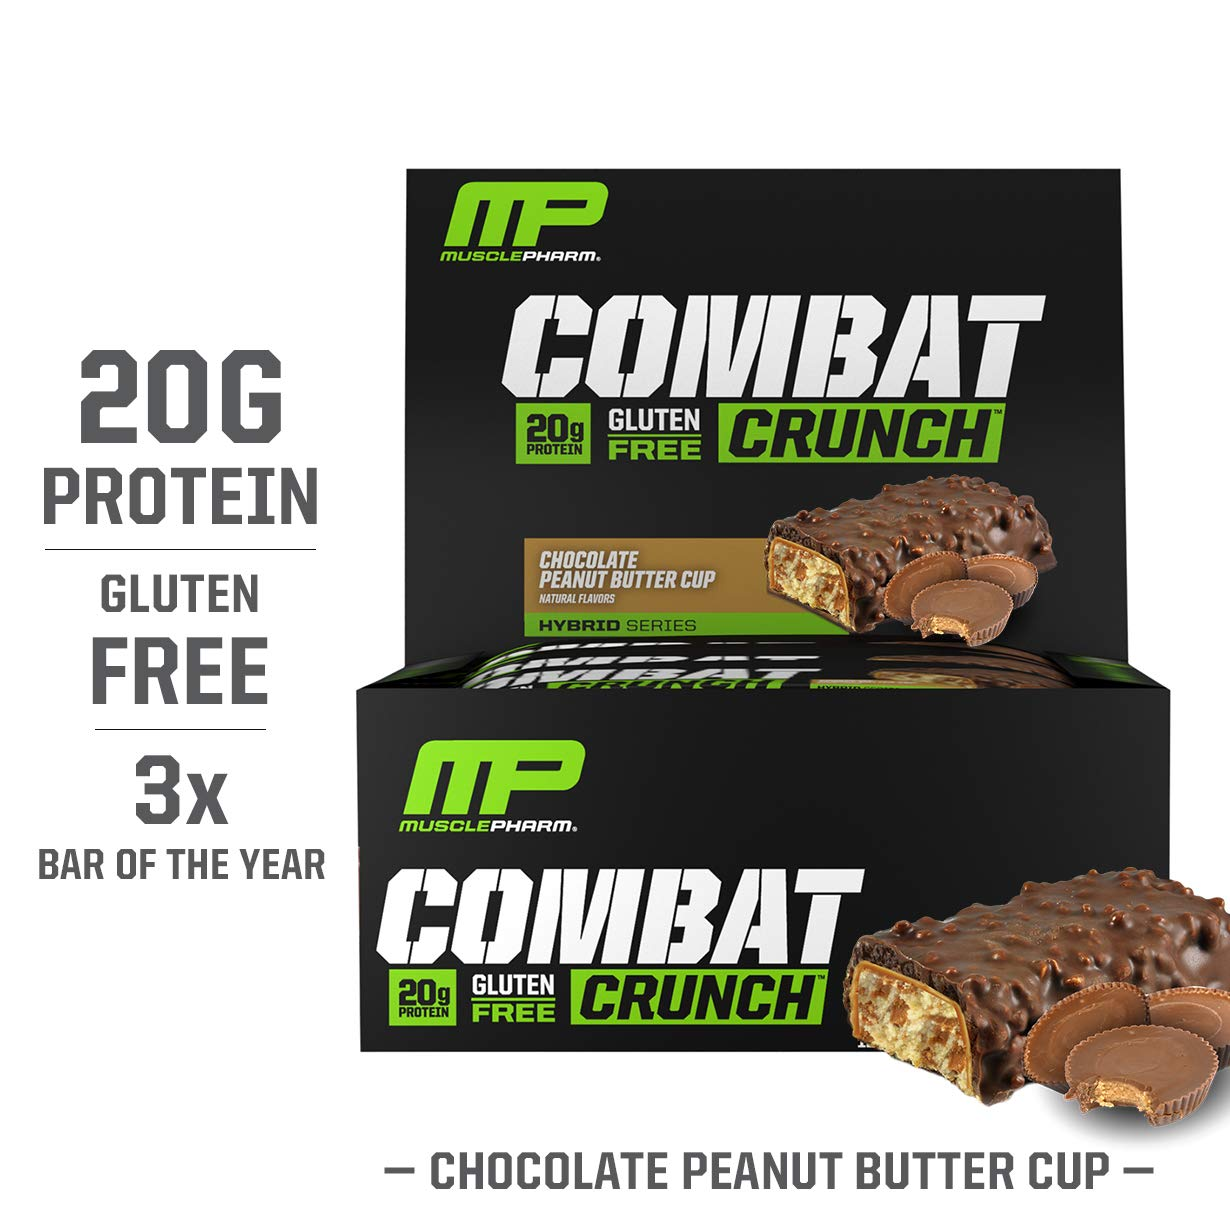 MusclePharm Combat Crunch Protein Bar, Multi-Layered Baked Bar, Gluten-Free Bars, 20 g Protein, Low-Sugar, Low-Carb, Gluten-Free, Chocolate Peanut Butter Cup Bars, 12 Servings by Muscle Pharm